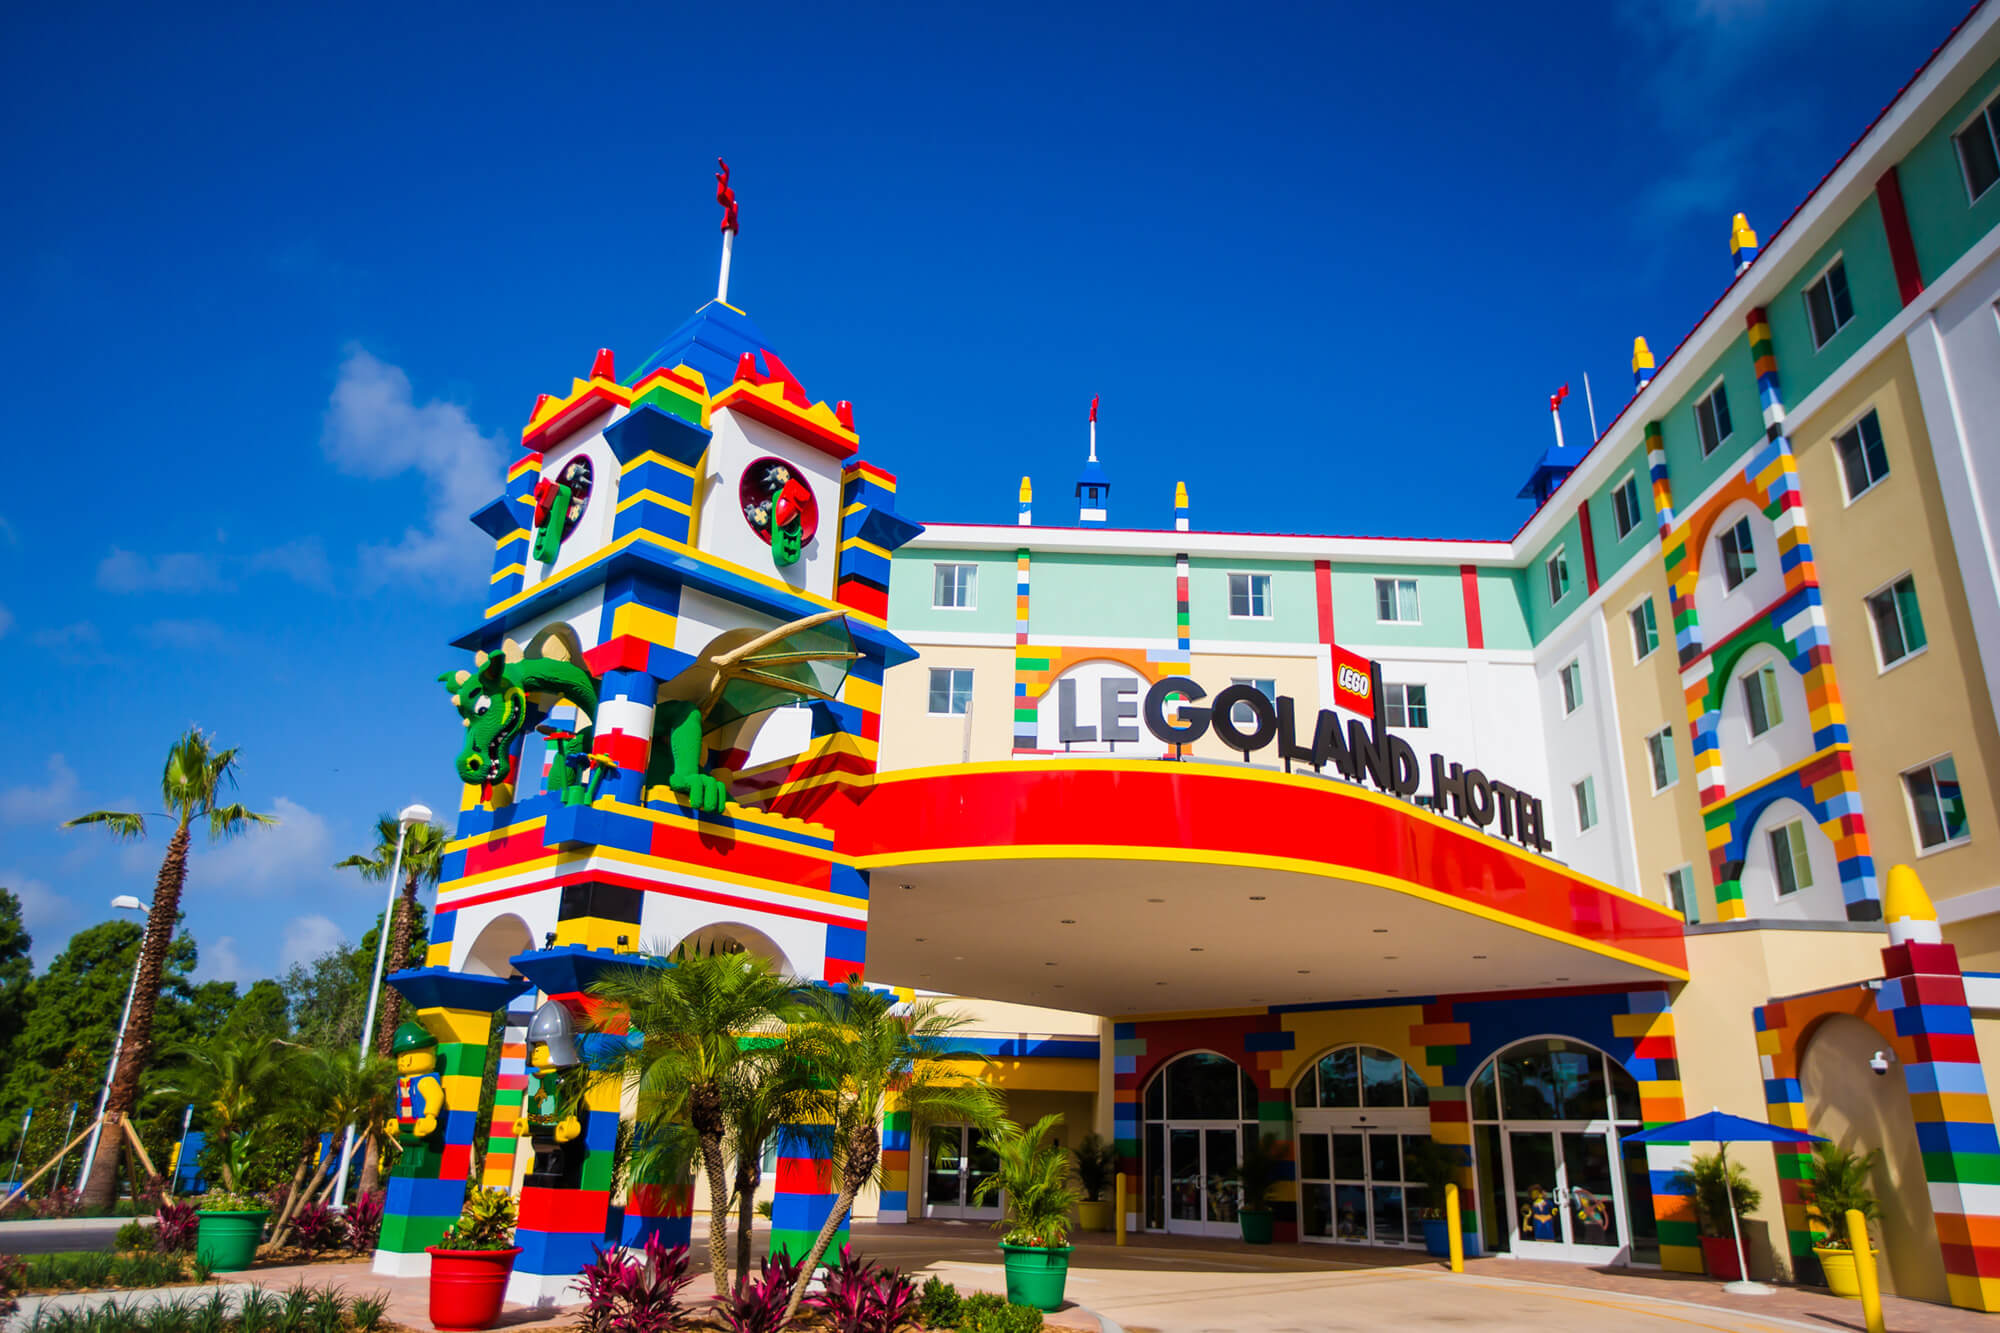 Exterior and entrance of LEGOLAND Hotel at LEGOLAND Florida Resort in Winter Haven, FL